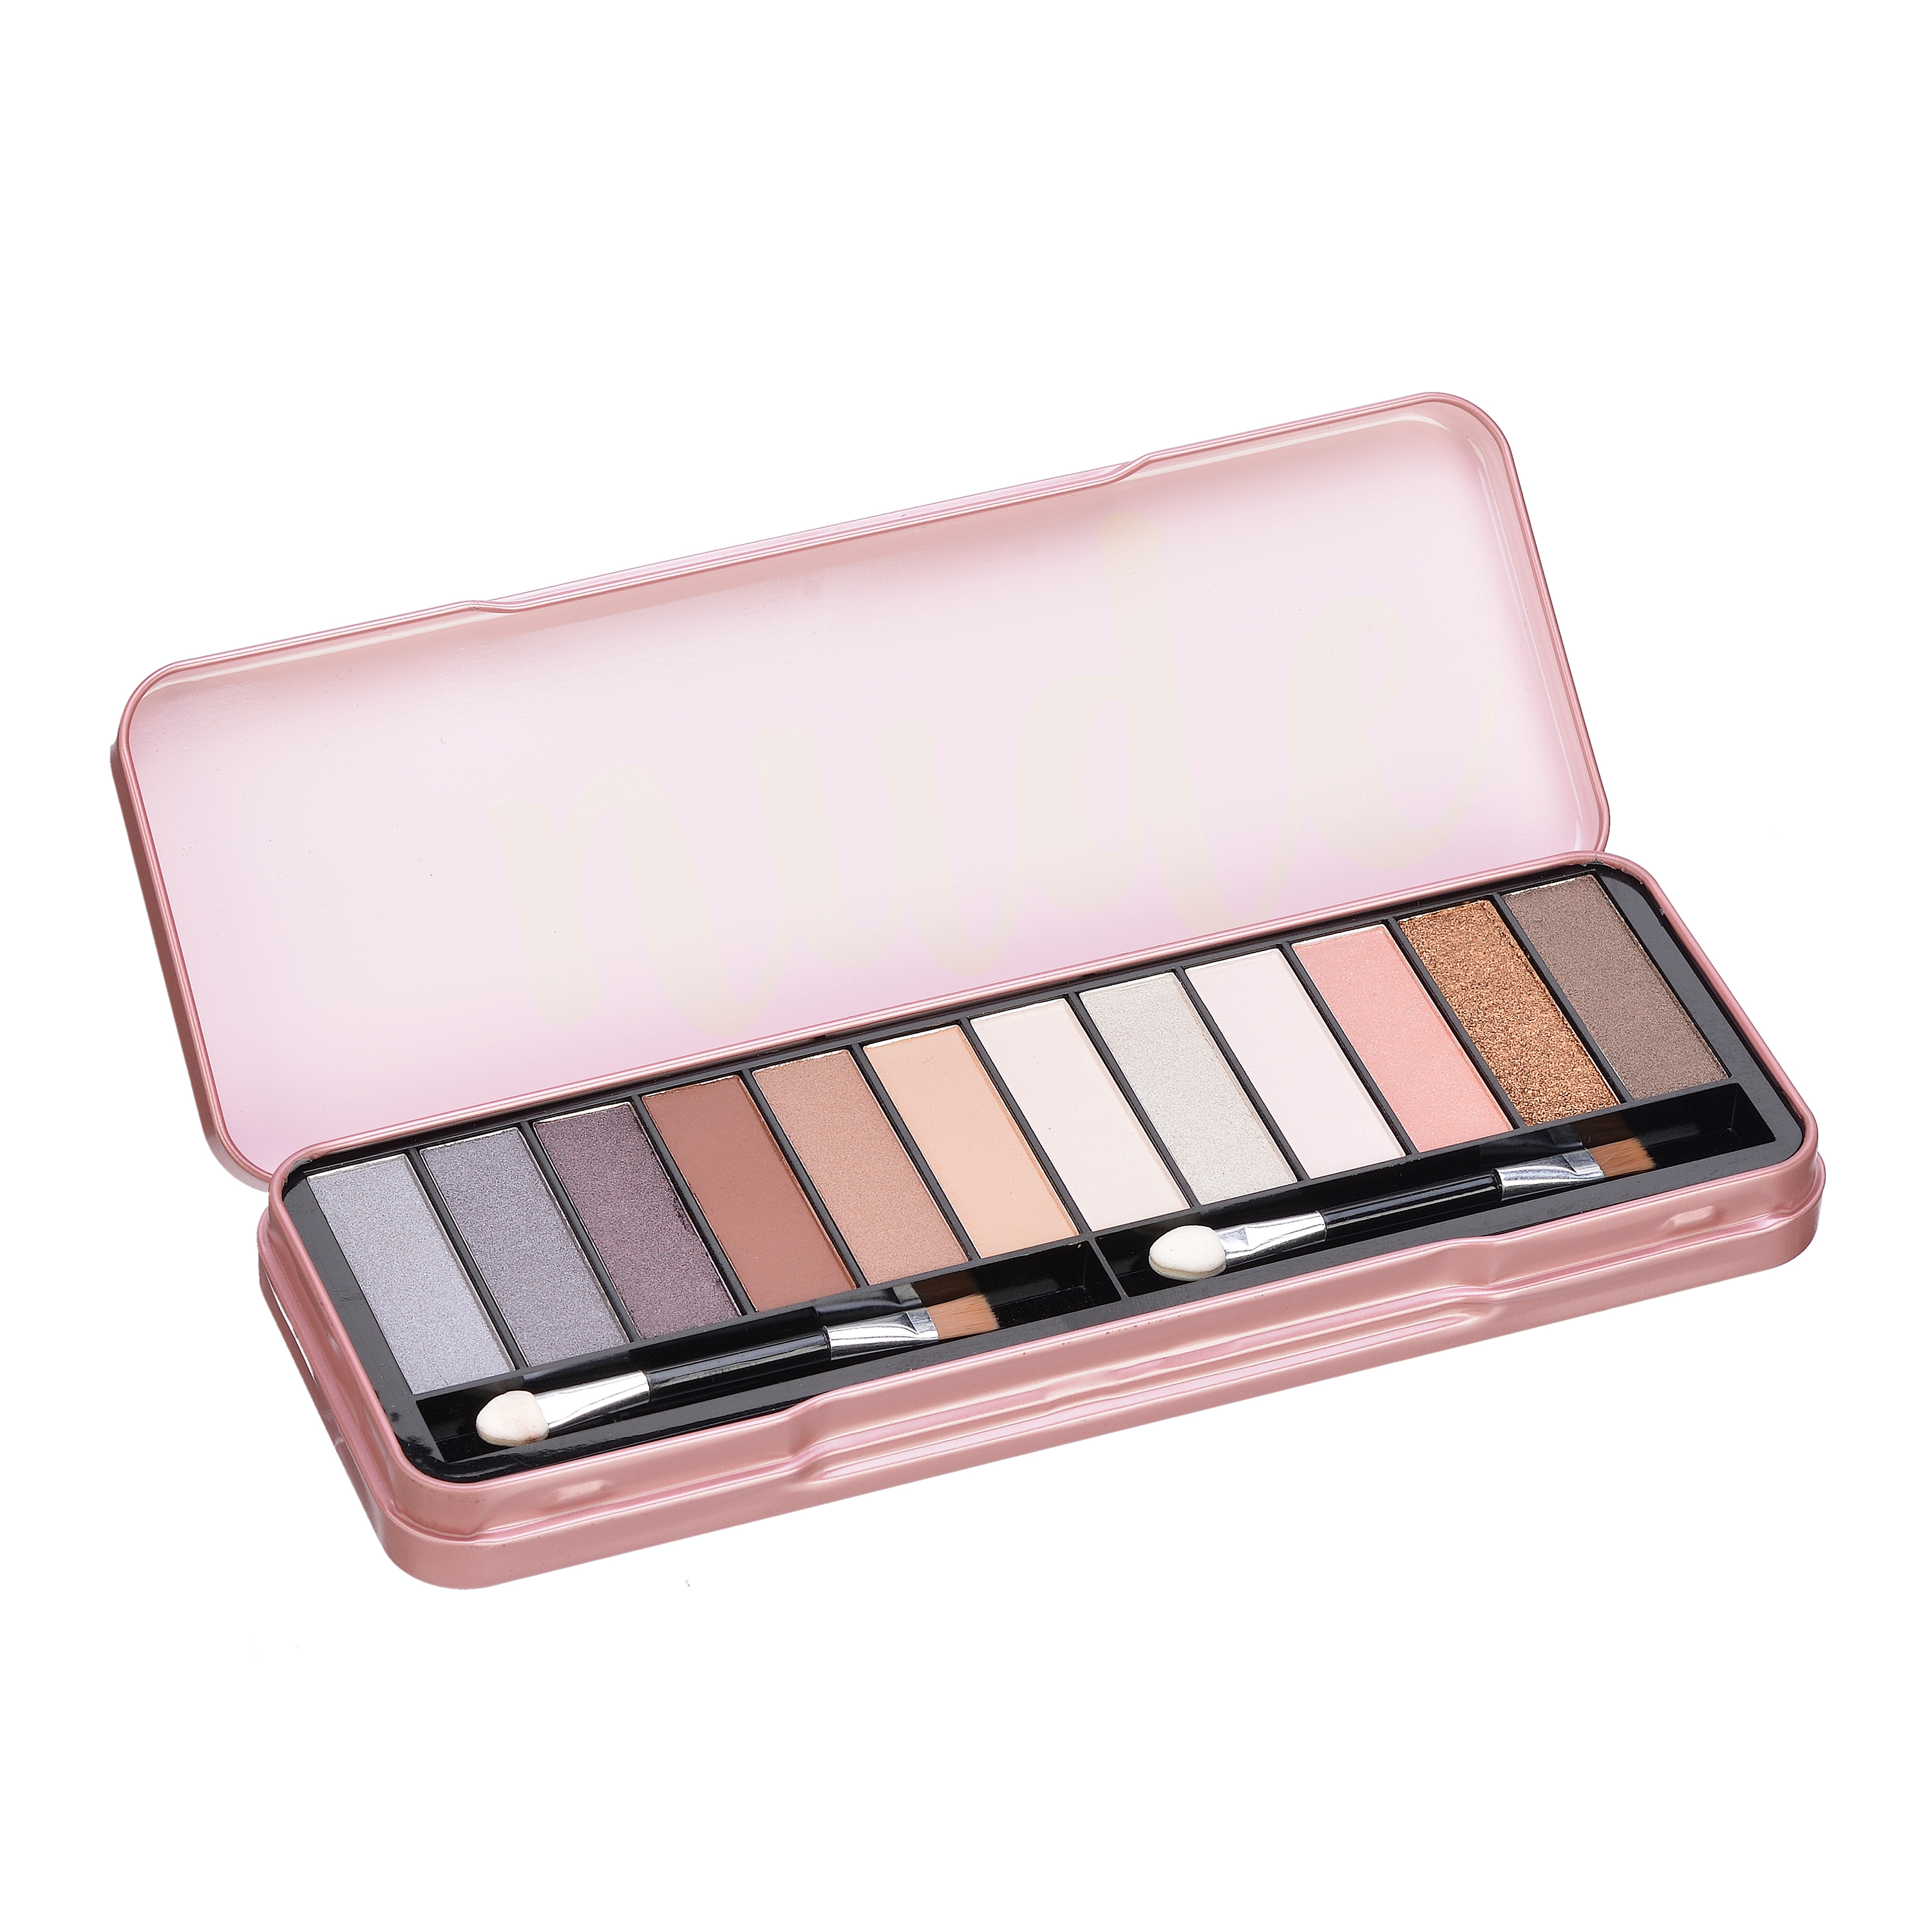 The Color Workshop Nude Eyes Eyeshadow Palette, 14 Pieces